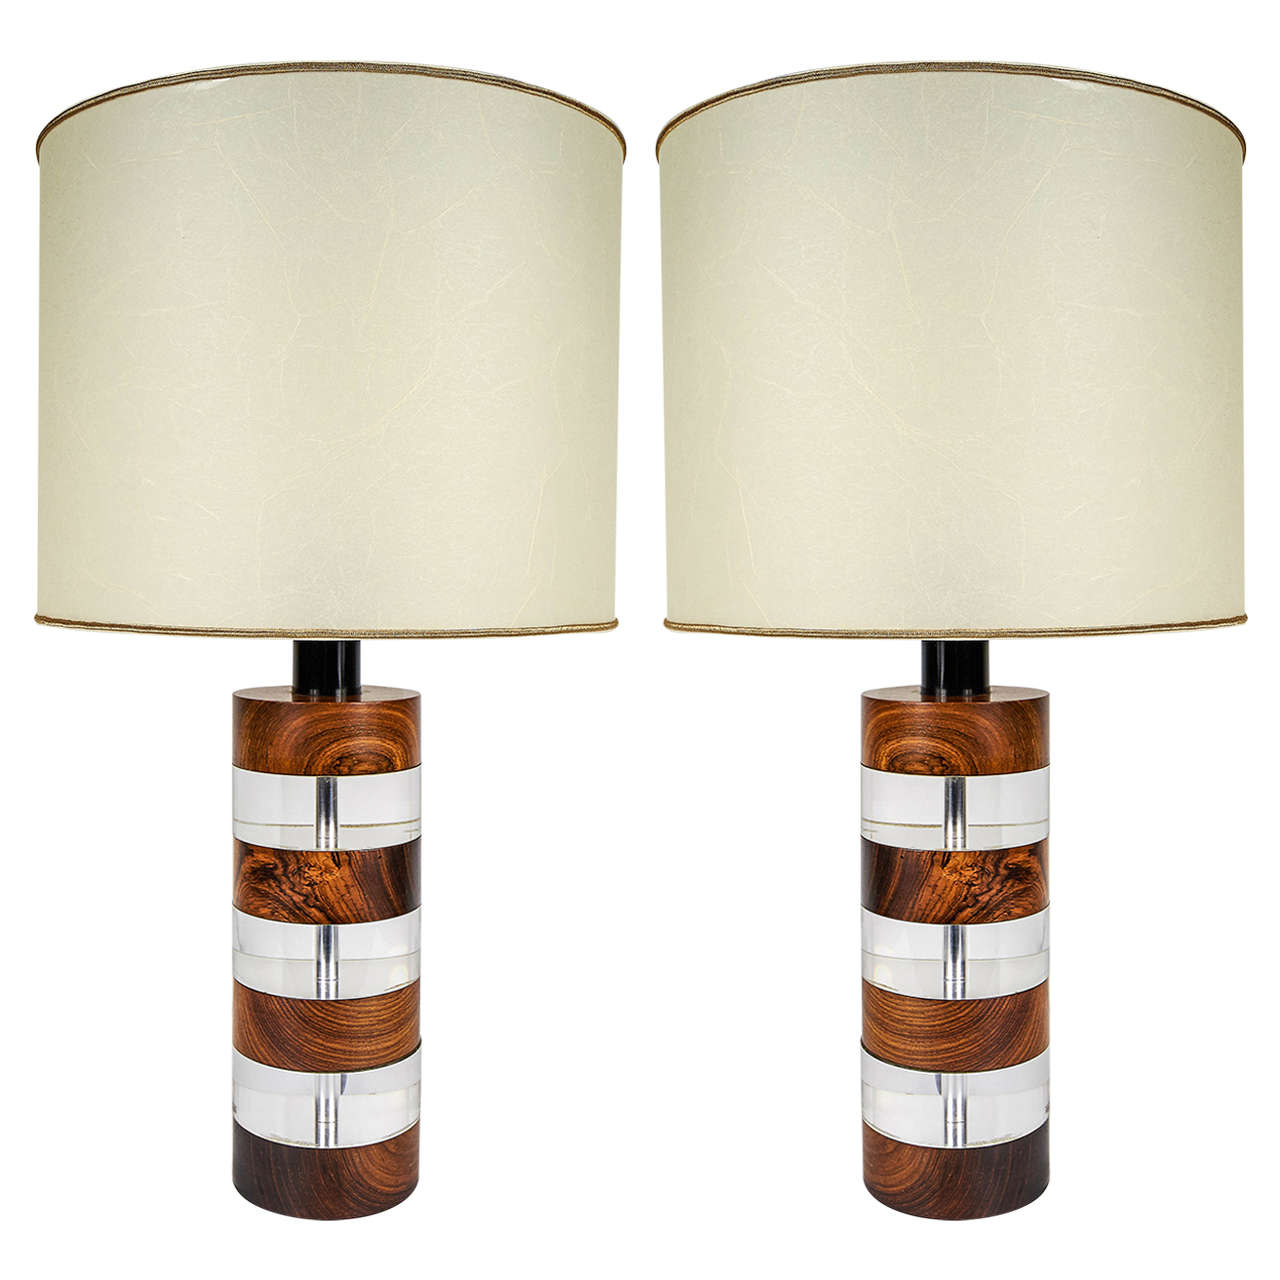 Pair of italian 1960s 1970s wood and lucite table lamps by botta pair of italian 1960s 1970s wood and lucite table lamps by botta firenze 1 geotapseo Images